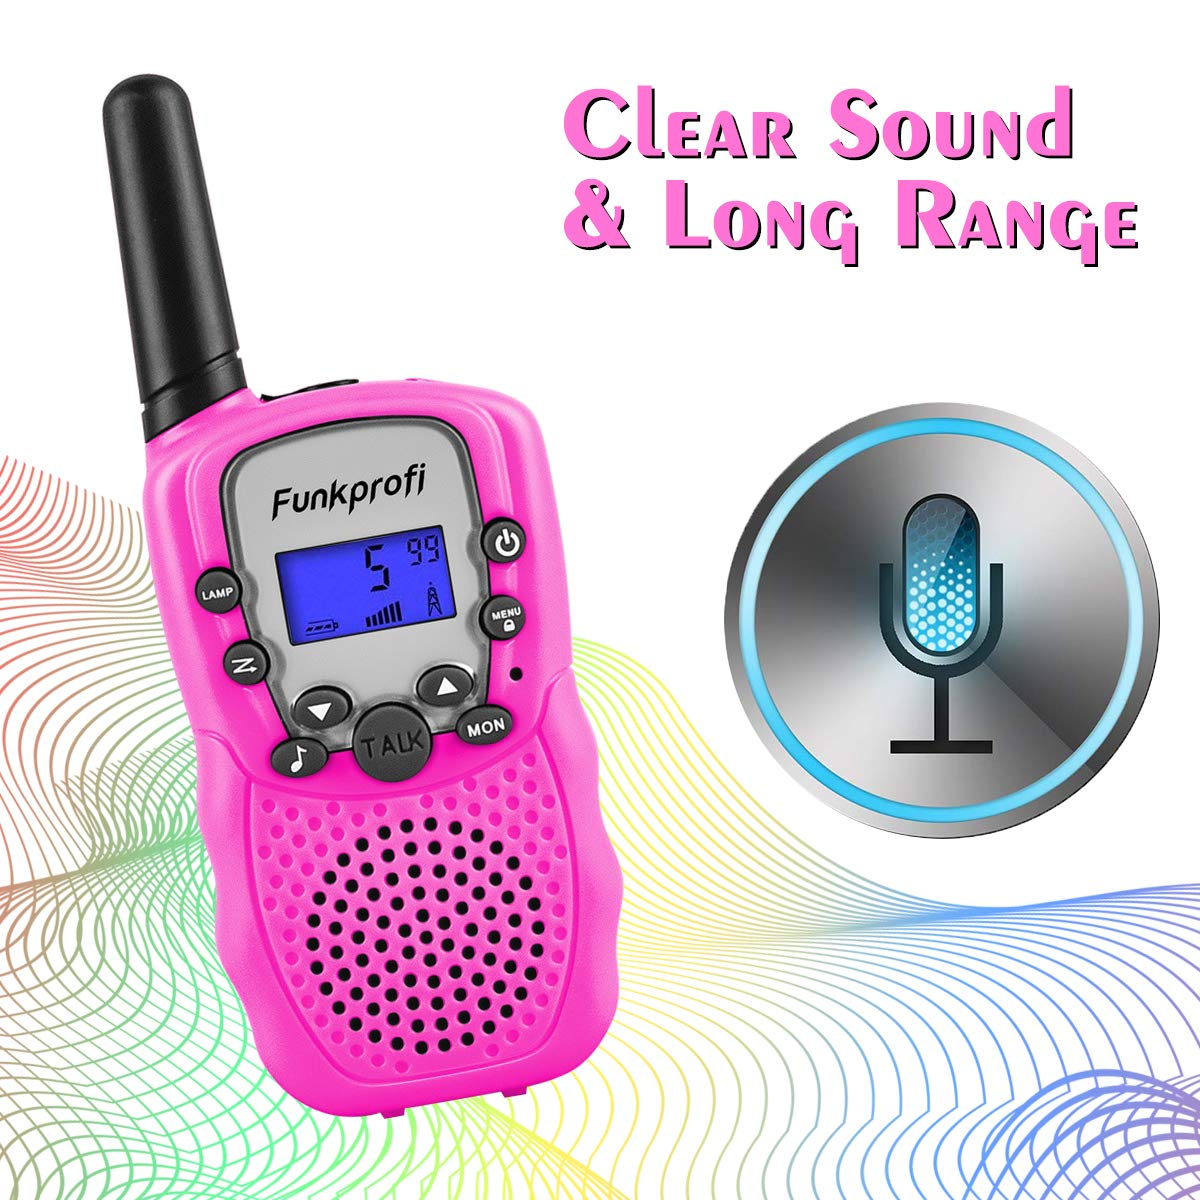 Funkprofi Walkie Talkies for Kids, VOX Hands Free Noise Canceling Kids Walkie Talkies with Belt Clip and LCD Screen, 22 Channels Long Range Two Way Radios for Camping Hiking Family Activities by Funkprofi (Image #3)